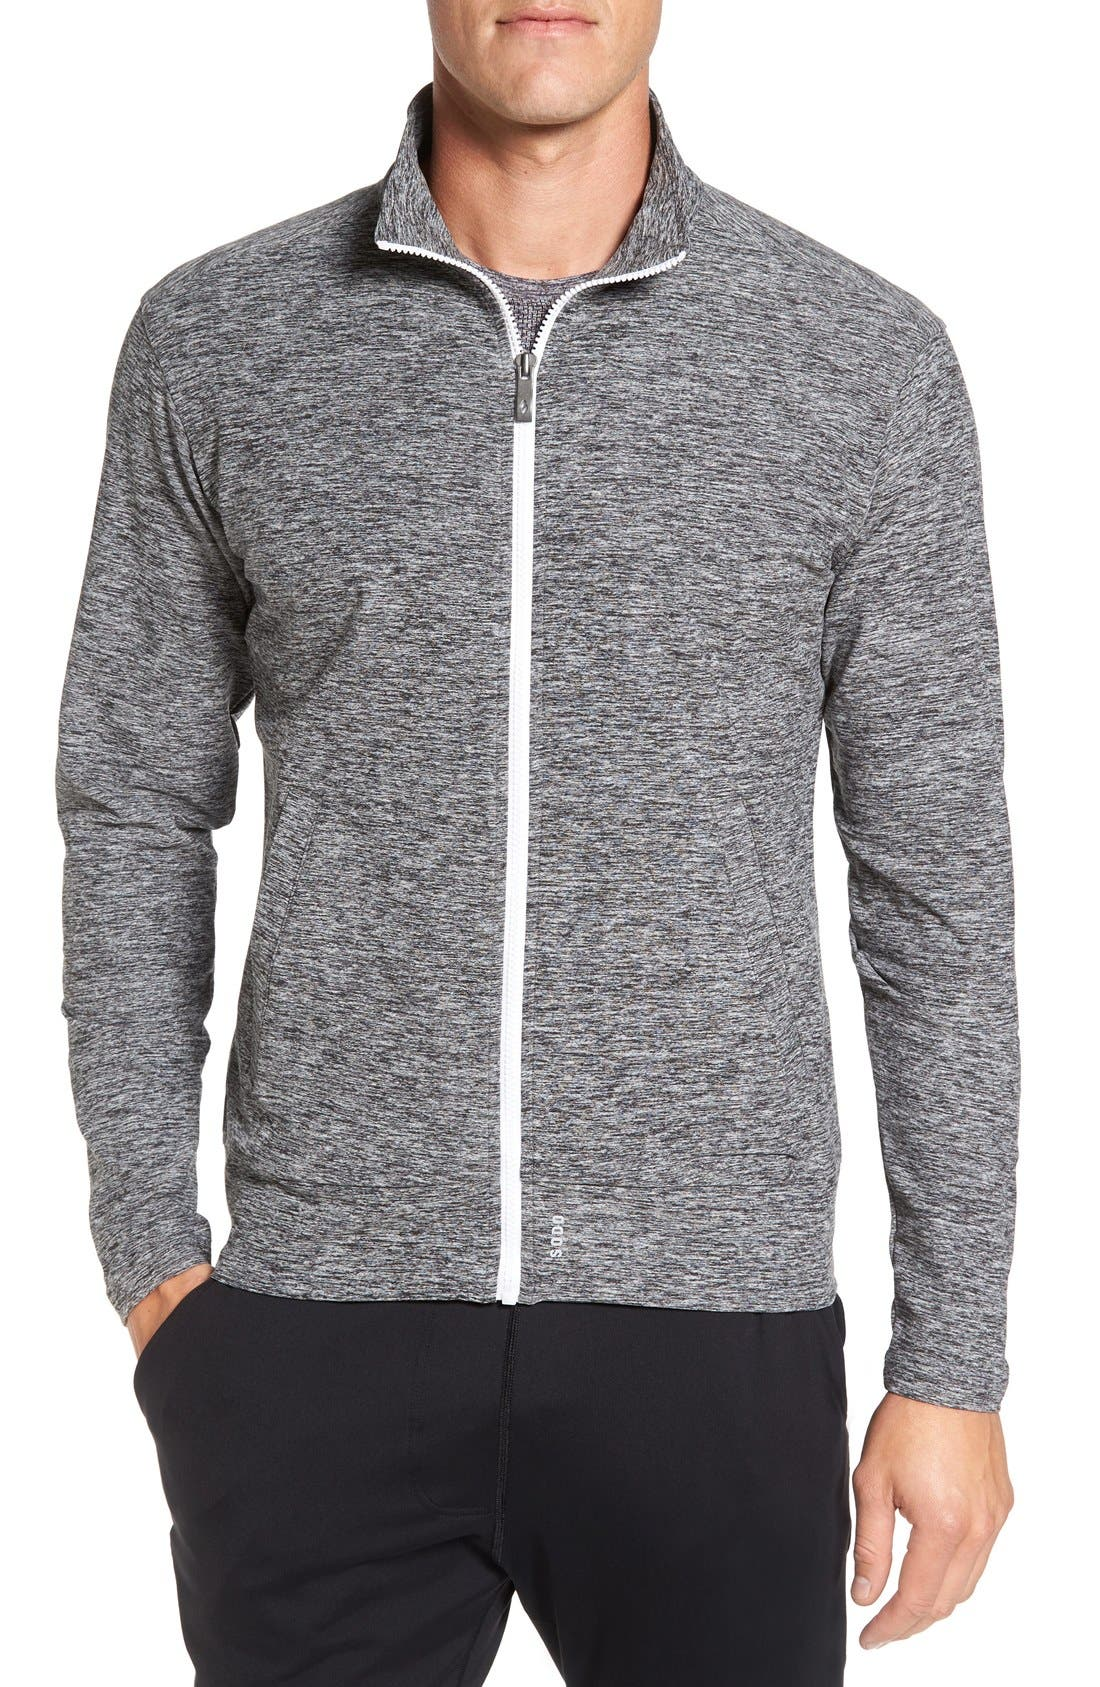 SODO 'The 206' Moisture Wicking Stretch Full Zip Jacket